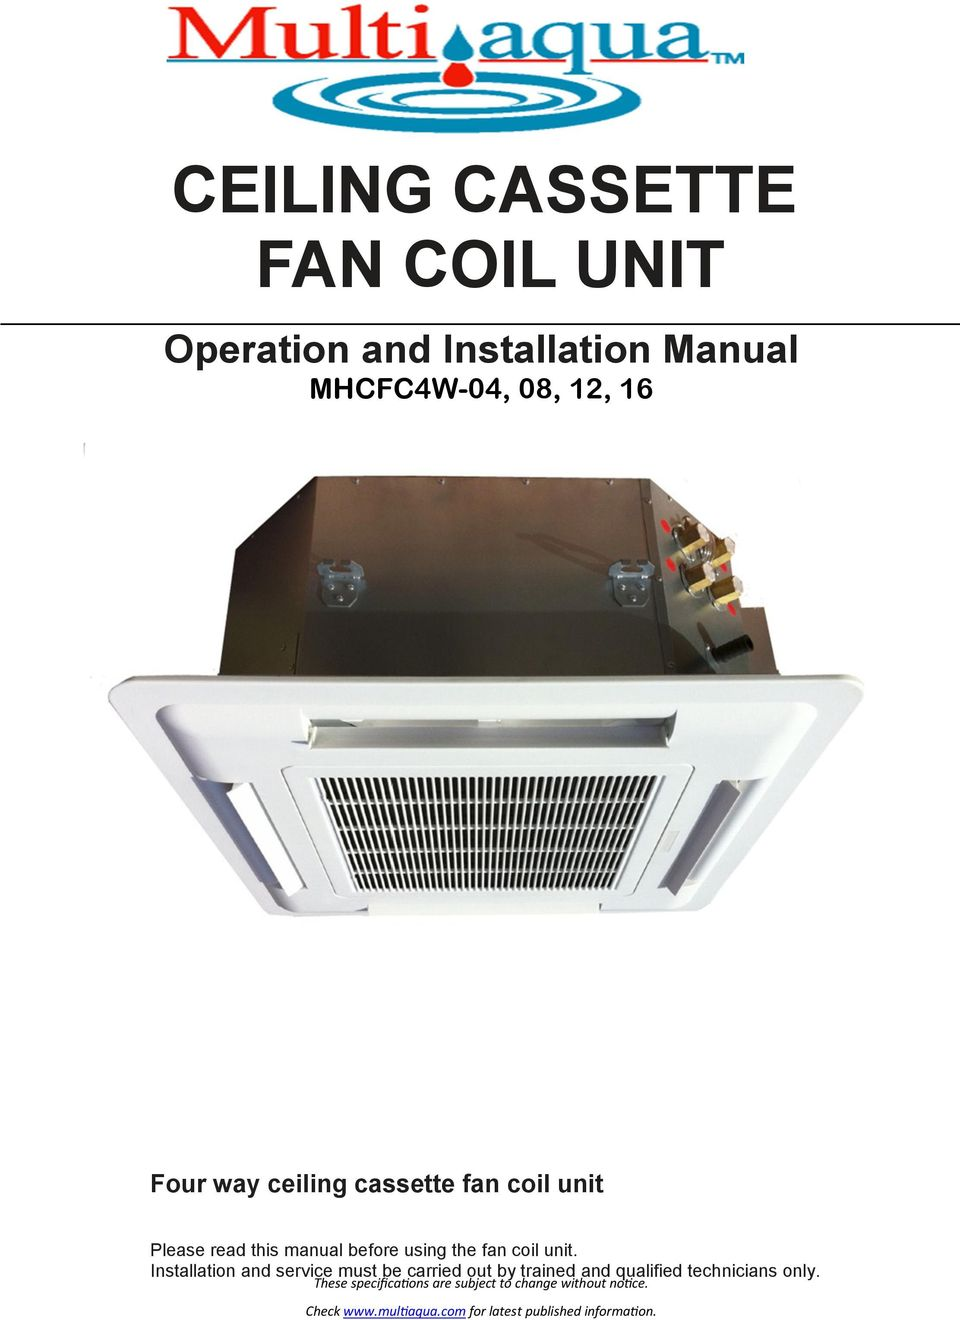 Please read this manual before using the fan coil unit.